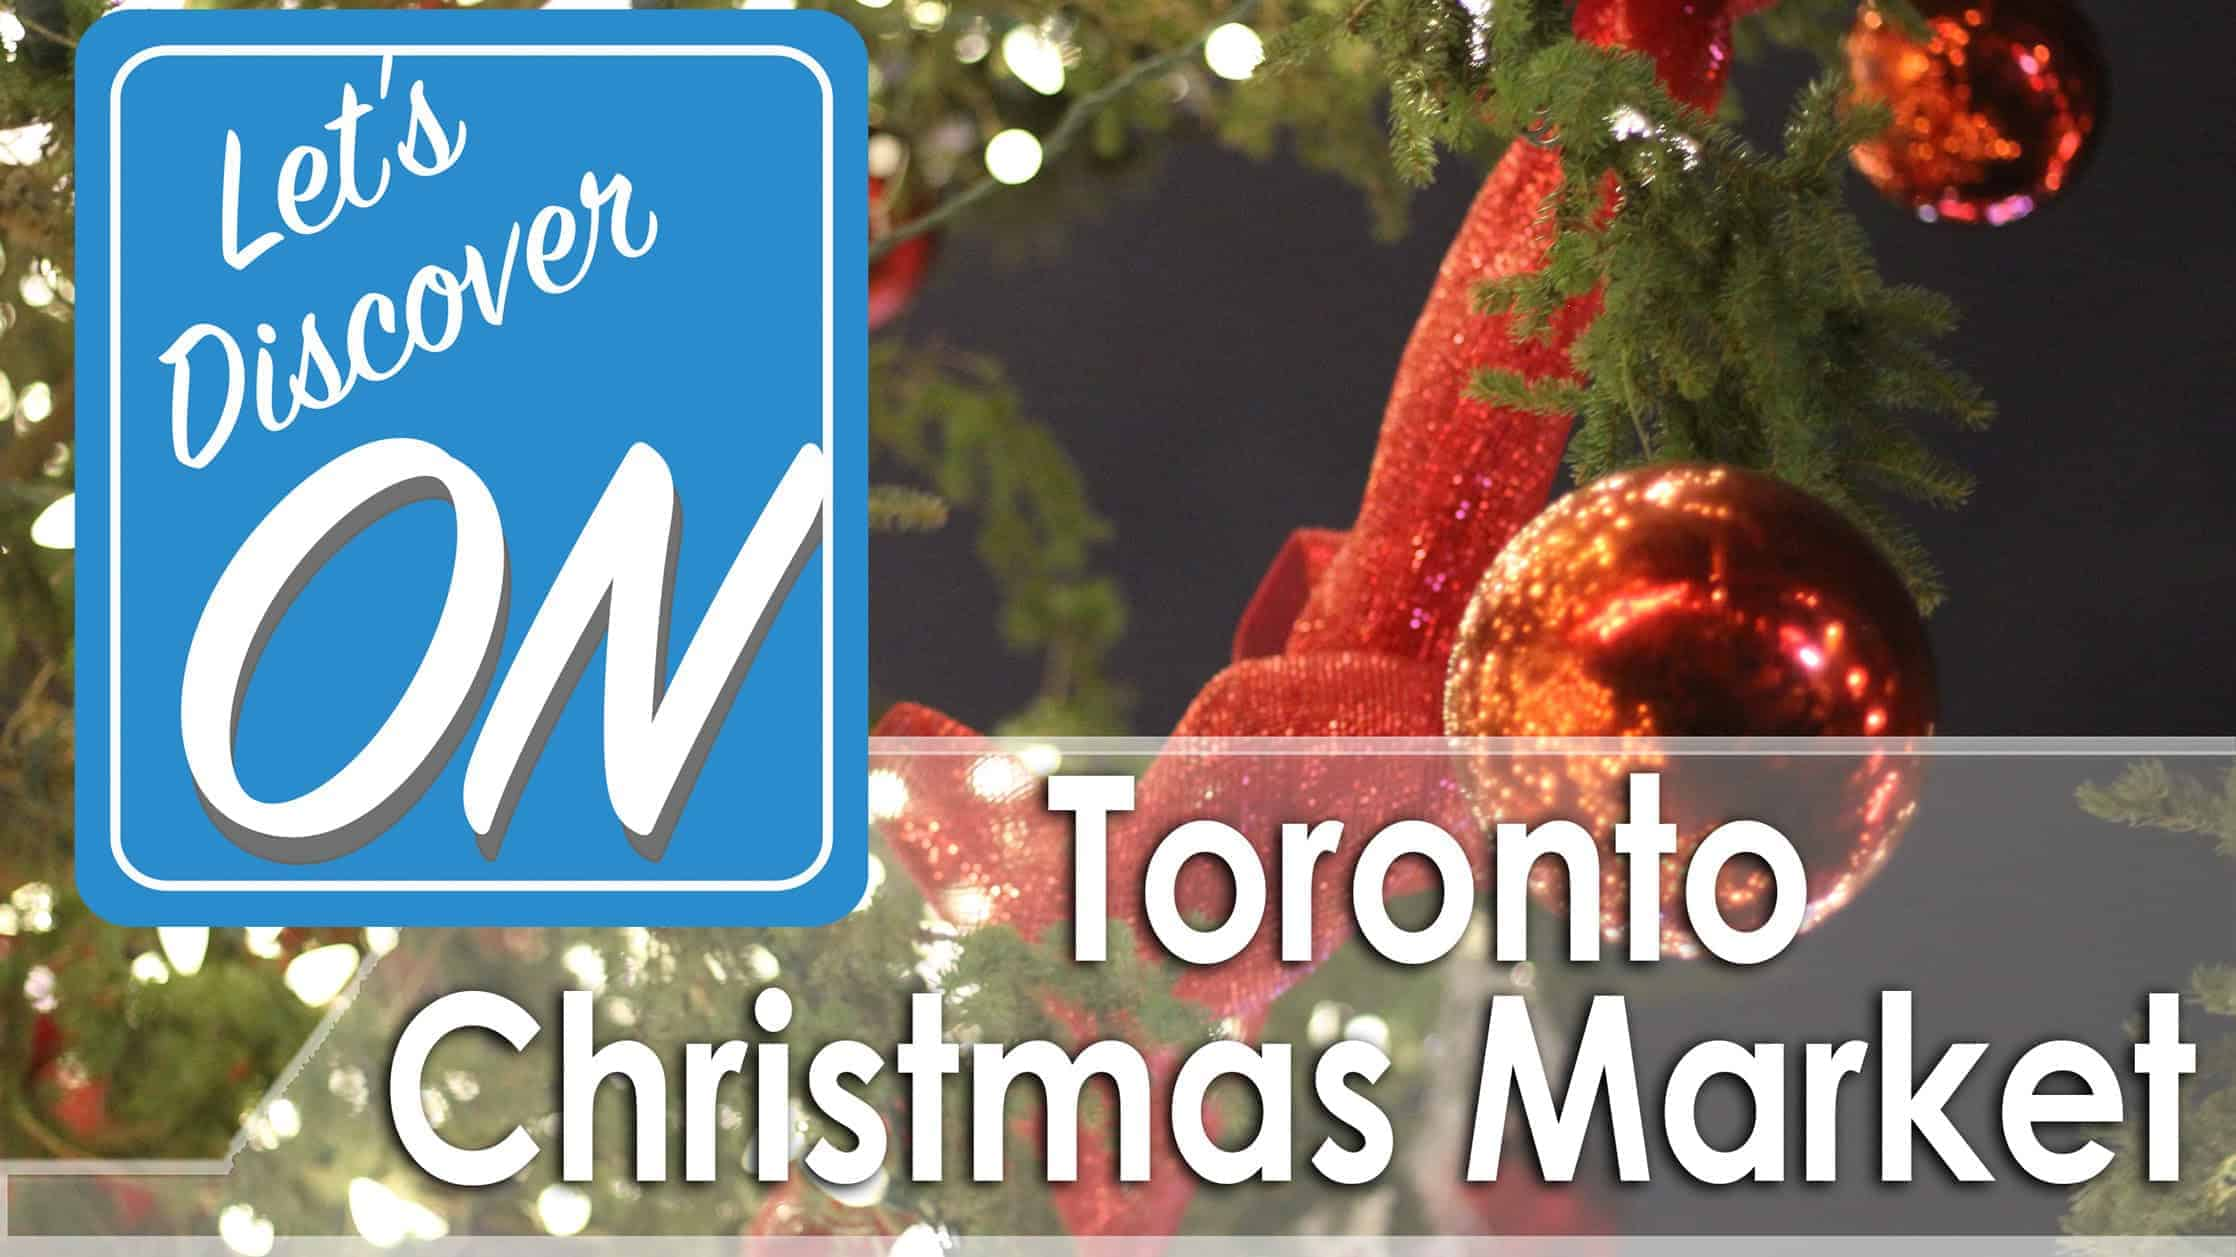 Let's Discover ON - Christmas Market, Toronto, ON